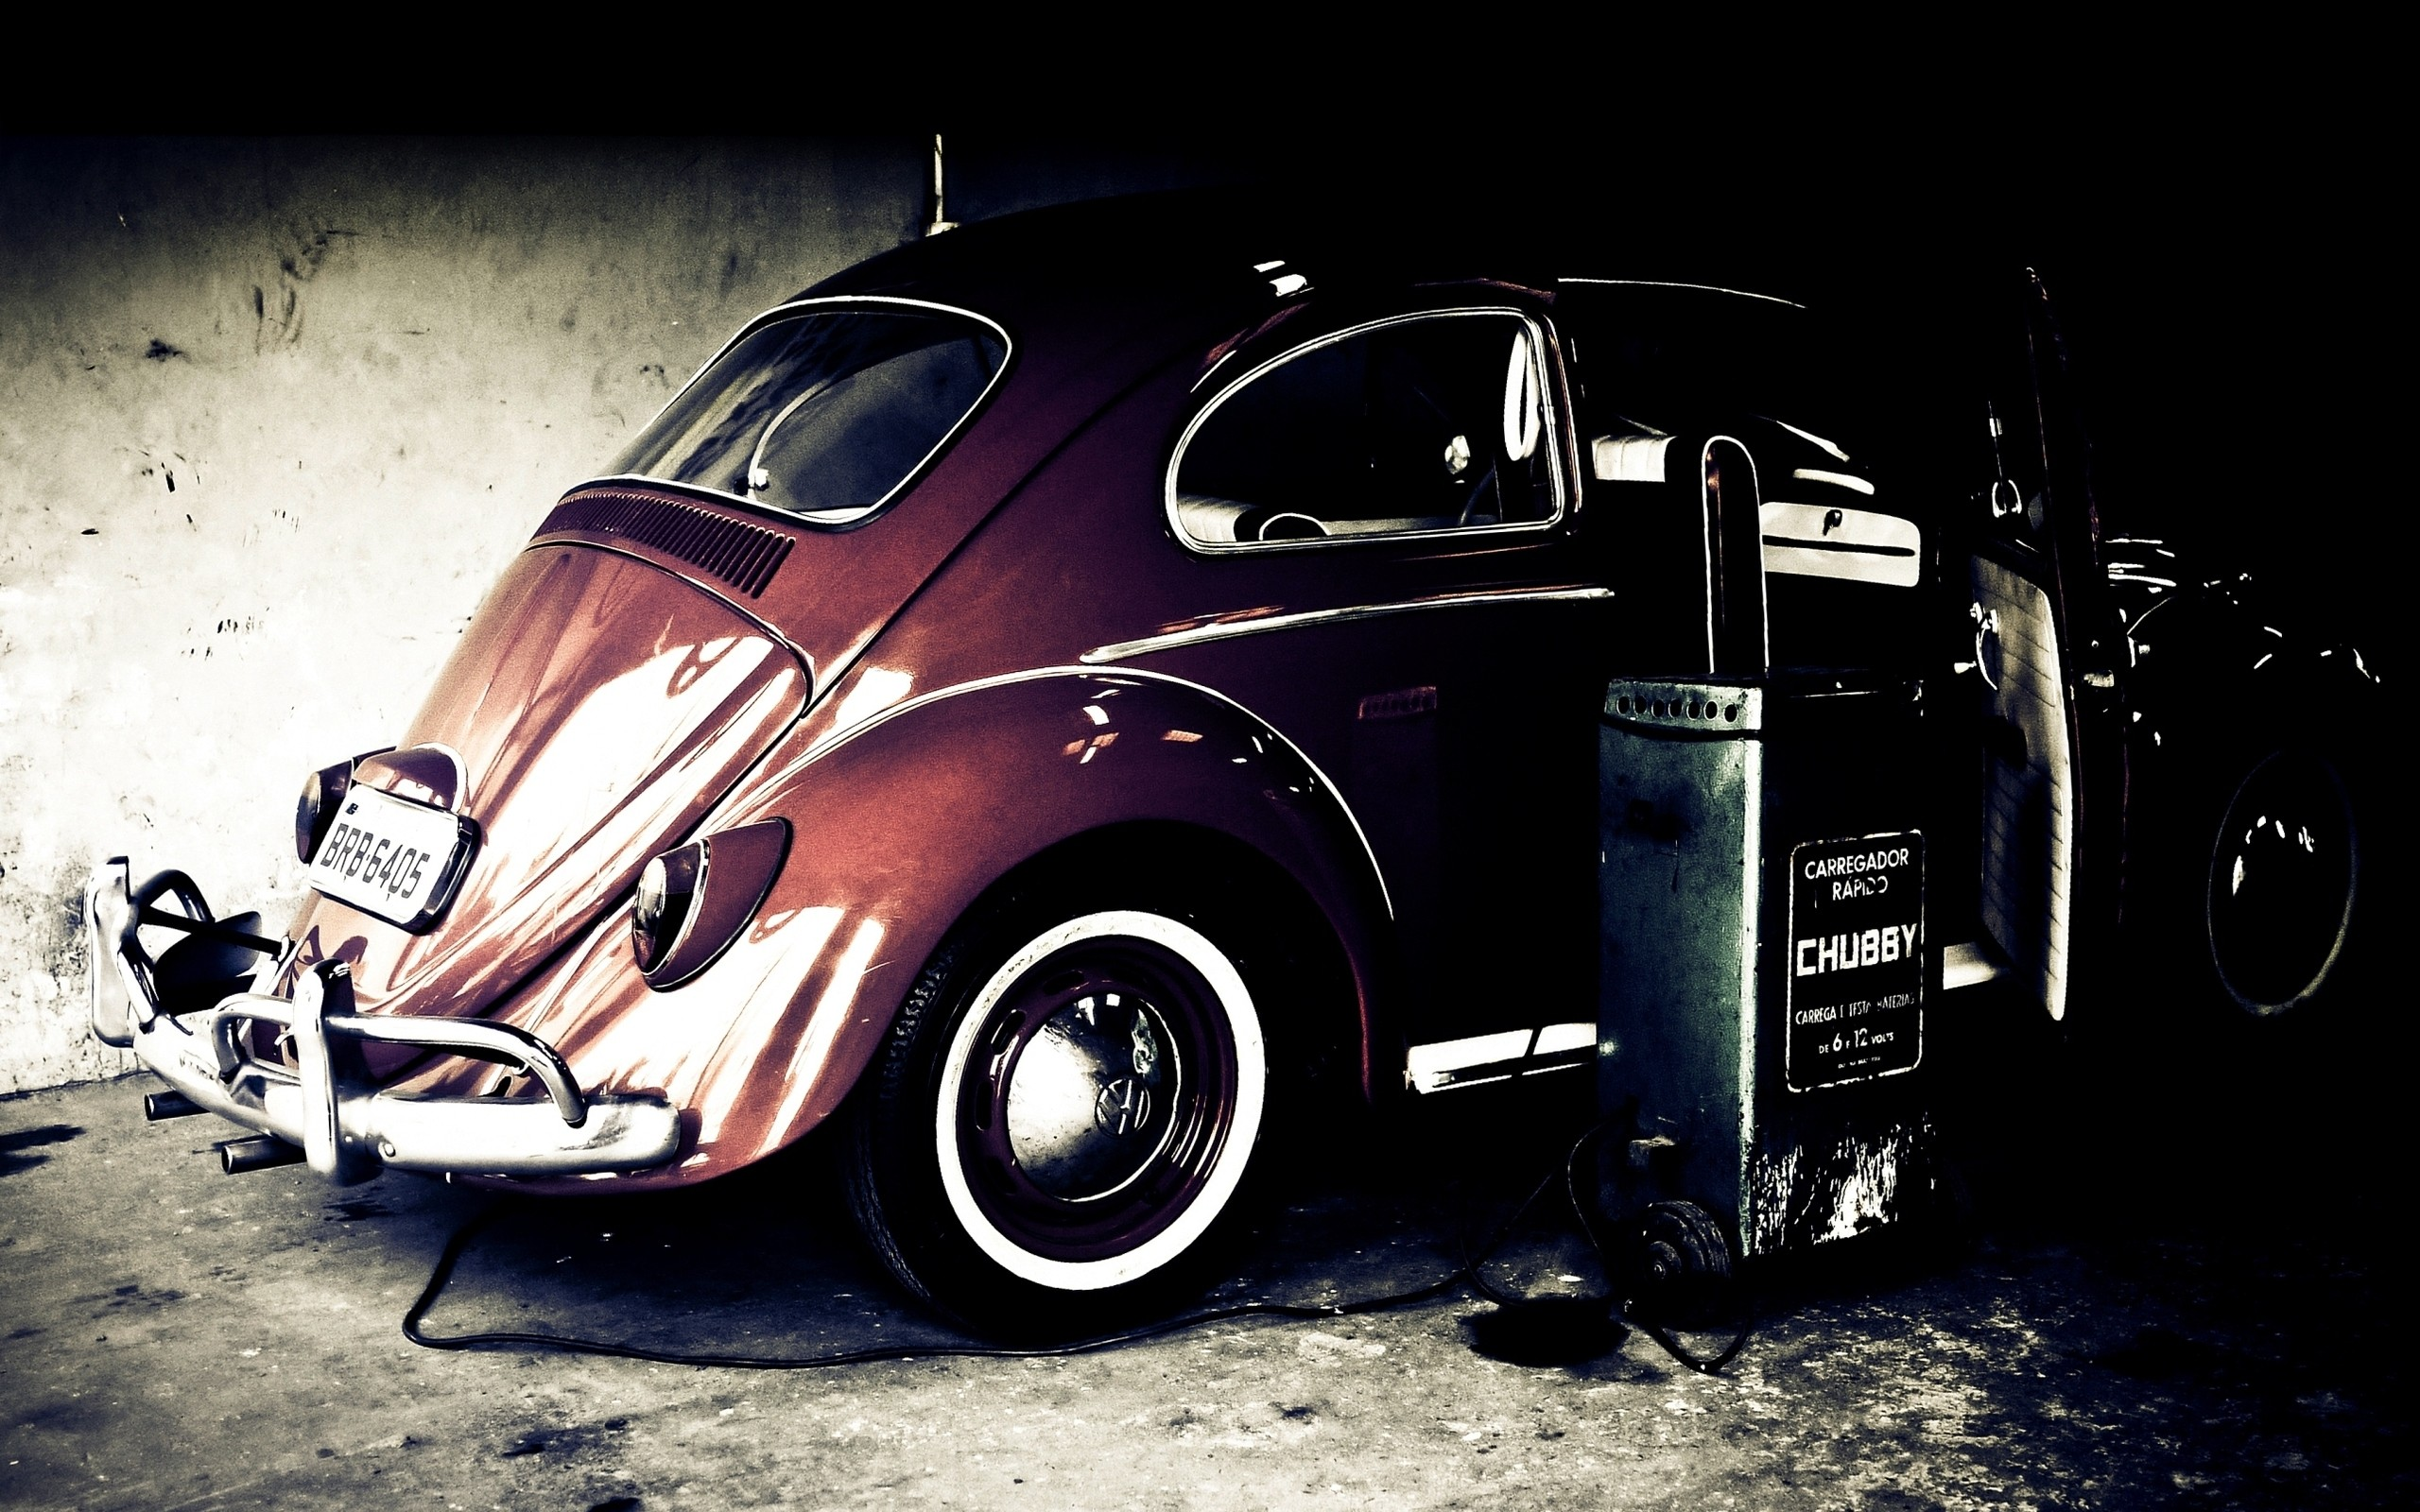 308 volkswagen hd wallpapers | background images - wallpaper abyss